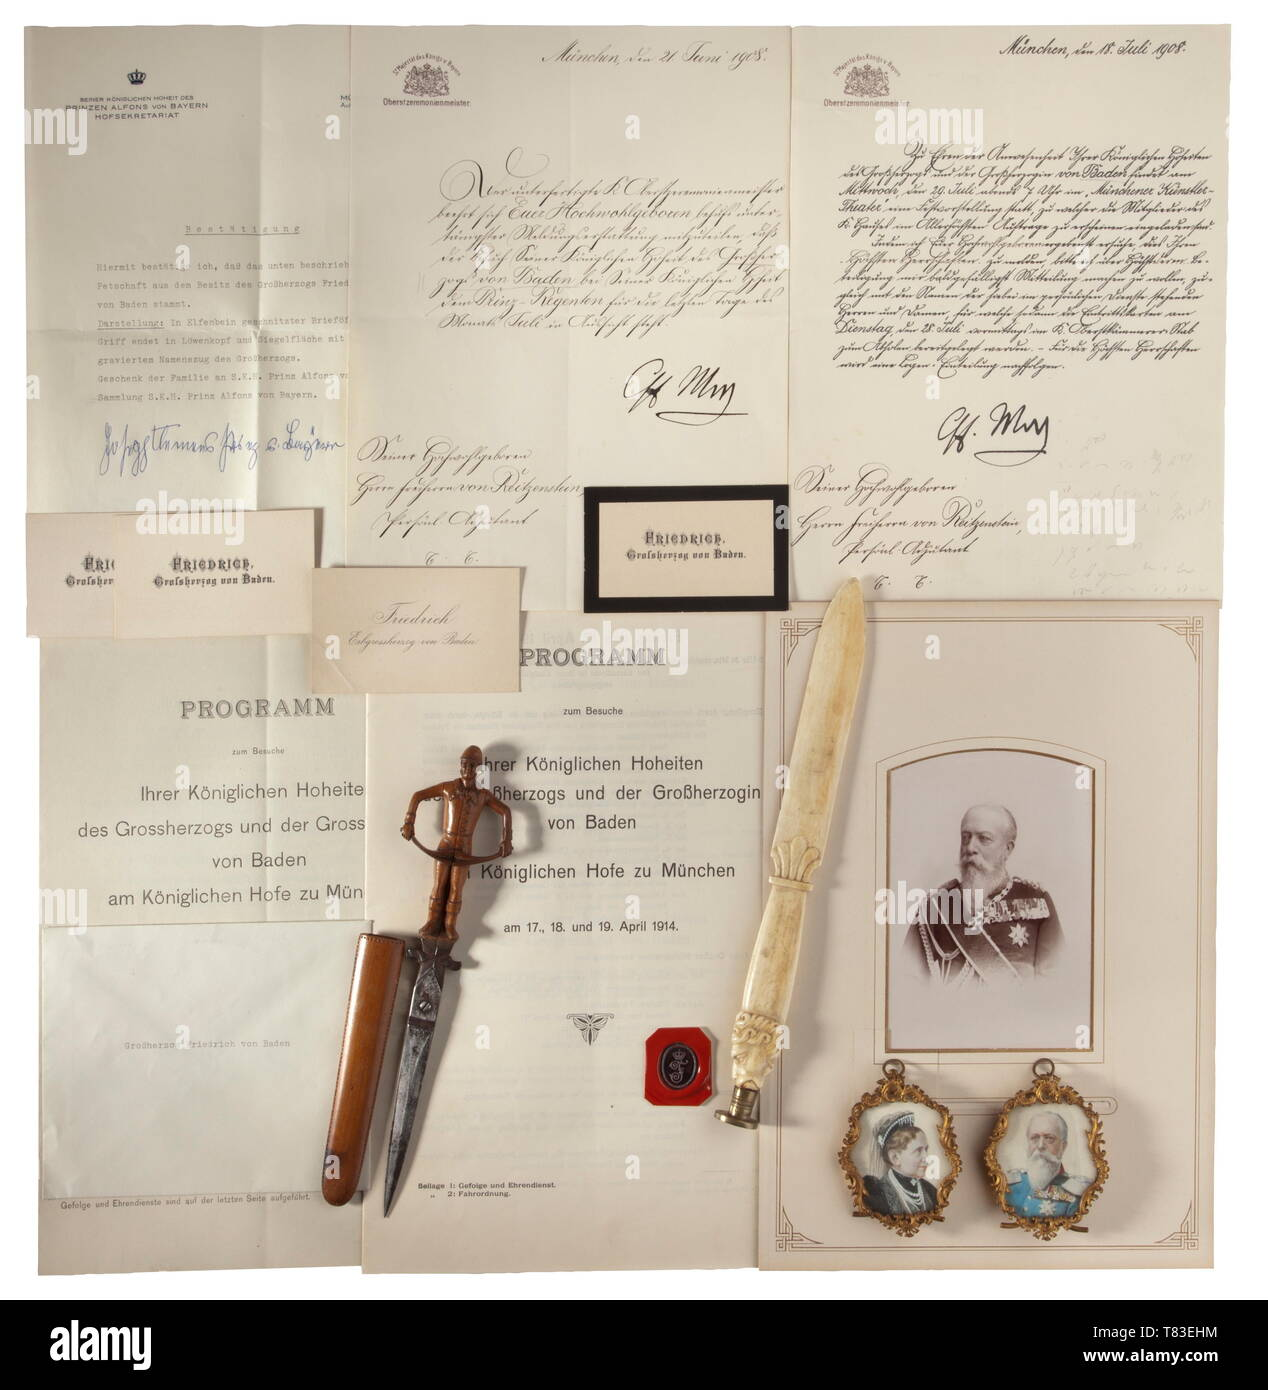 Grand Duke Friedrich I (1826 - 1907) - his personal seal, miniature portraits etc. The seal in the form of an ivory letter opener with lion´s head, the brass seal matrix incised with the crowned monogram 'F', length 25.5 cm. With written confirmation and inventory card of Prince Alfons of Bavaria, who received it as a gift from the grand duke. Also a large portrait photograph of the grand duke in uniform, four cartes de visite, comprehensive schedules for the visit of the grand duke and the grand duchess in Munich in 1908 and 1914, a pair of pape, Additional-Rights-Clearance-Info-Not-Available - Stock Image